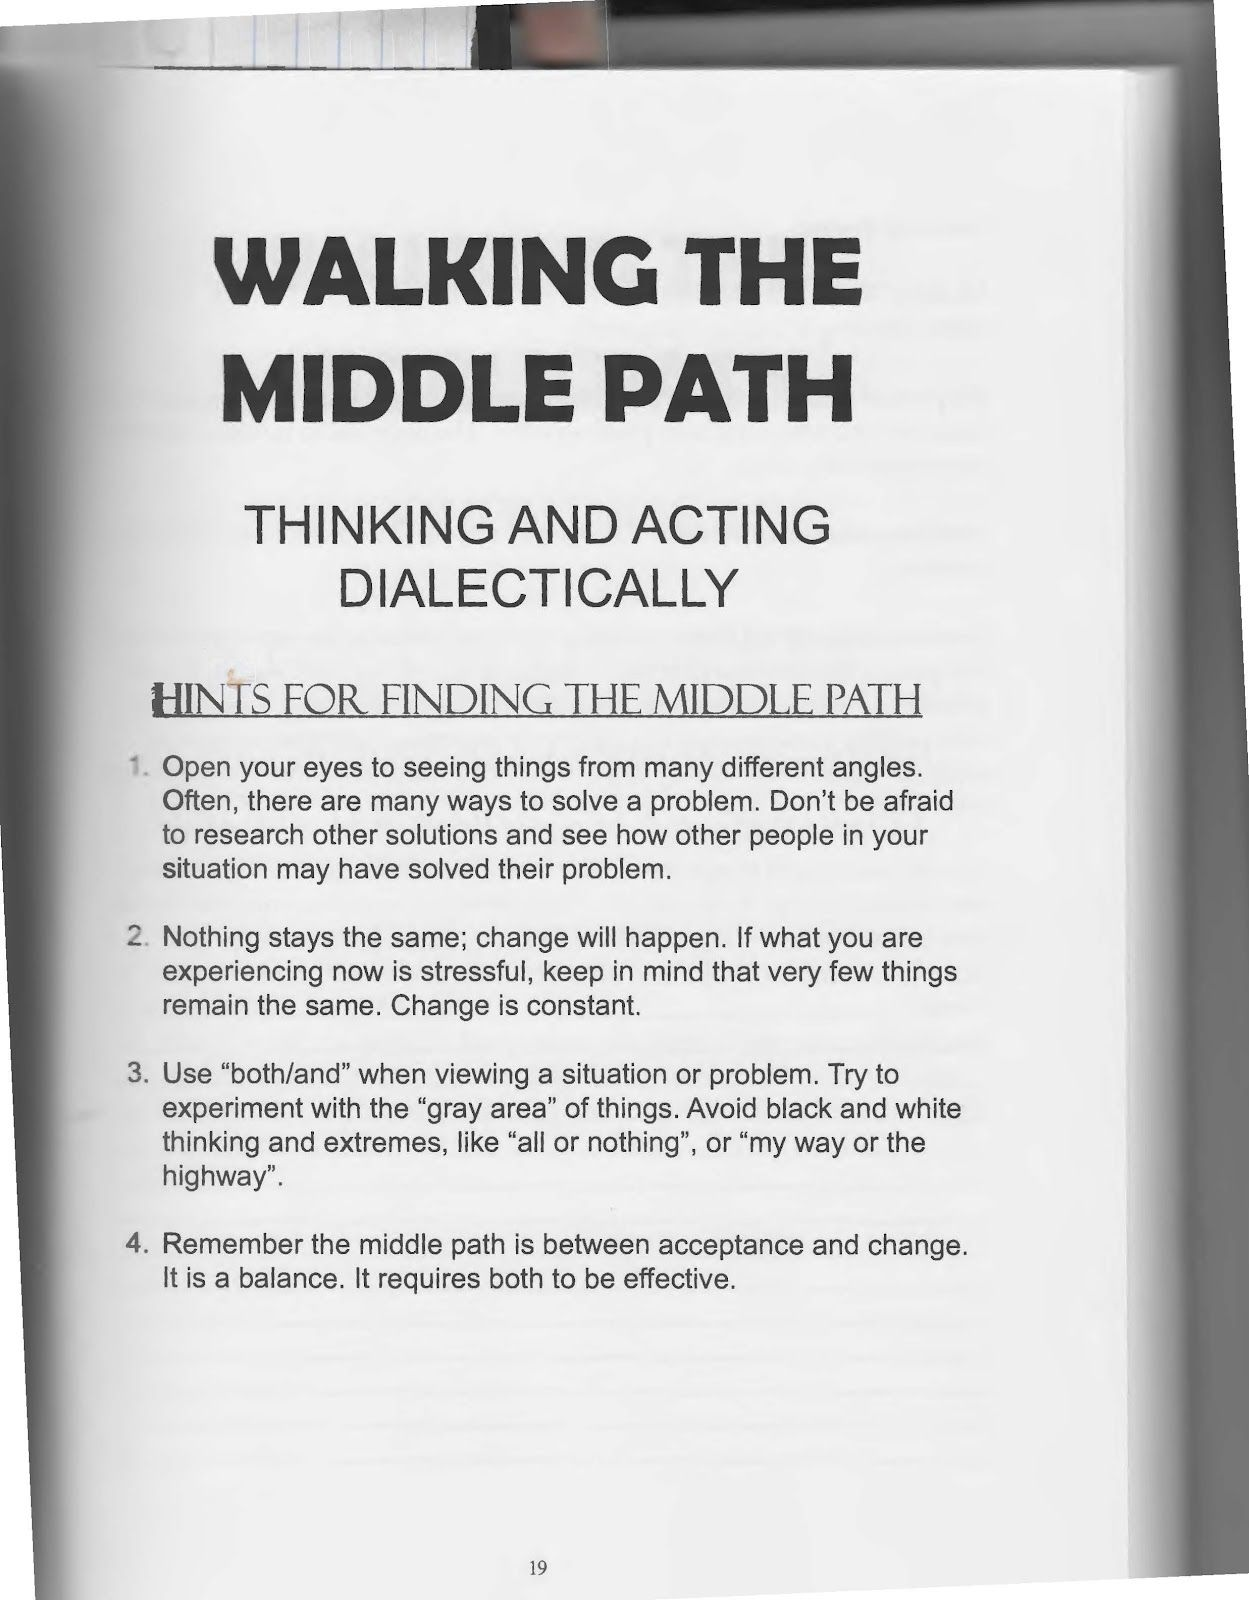 Dbt Walking The Middle Path The Art Of Dialectical Behavior Therapy